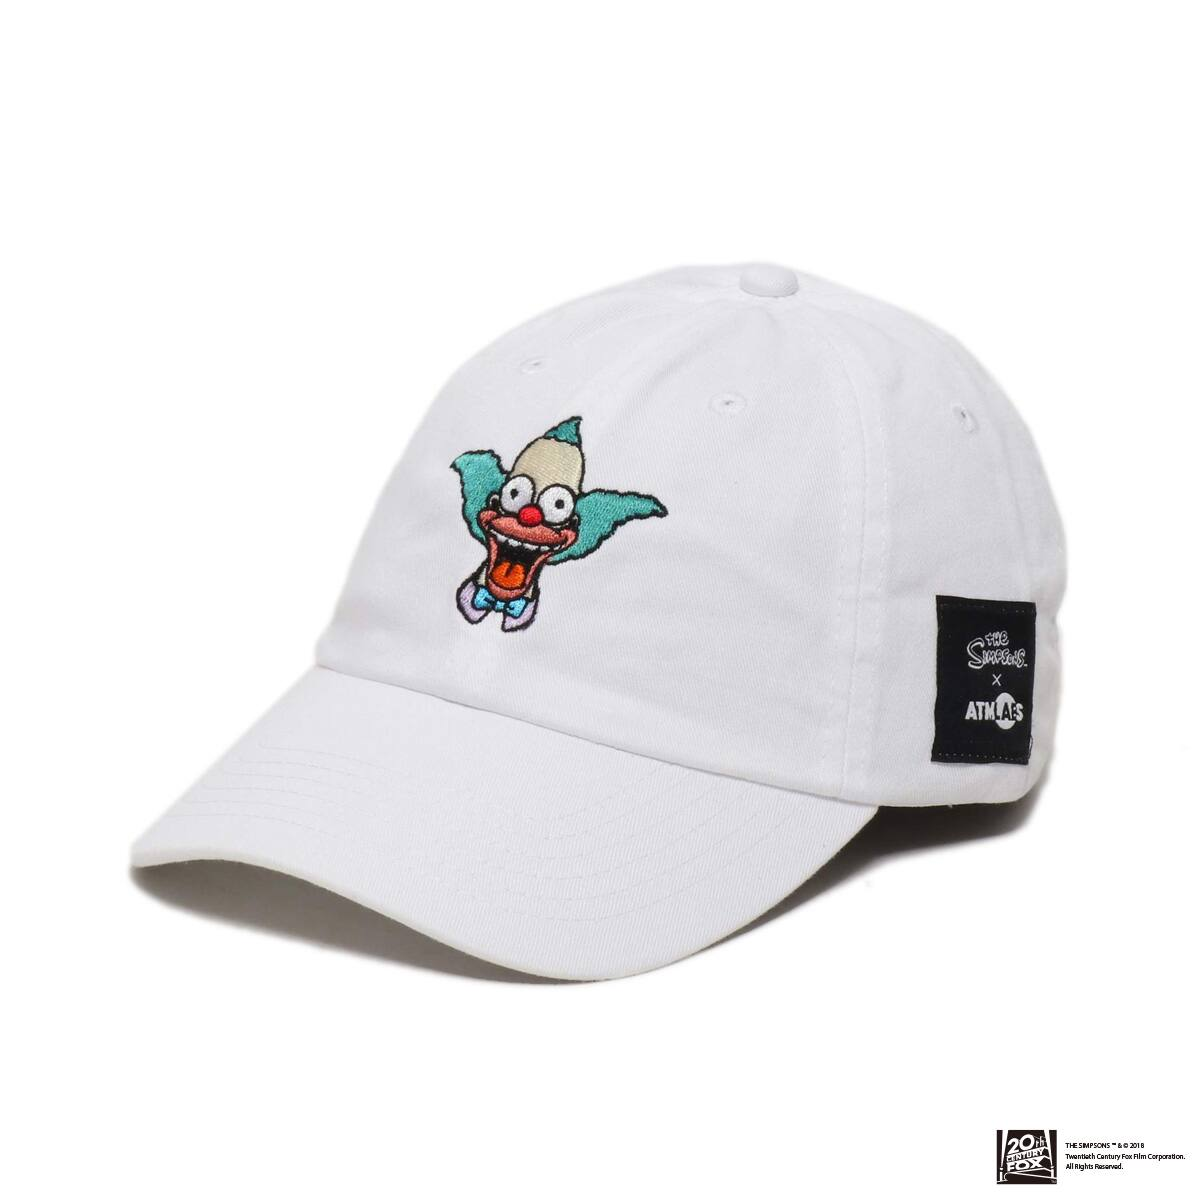 THE SIMPSONS x ATMOS LAB KRUSTY EMBROIDERY 6 PANEL CAP  WHITE 18FW-I_photo_large